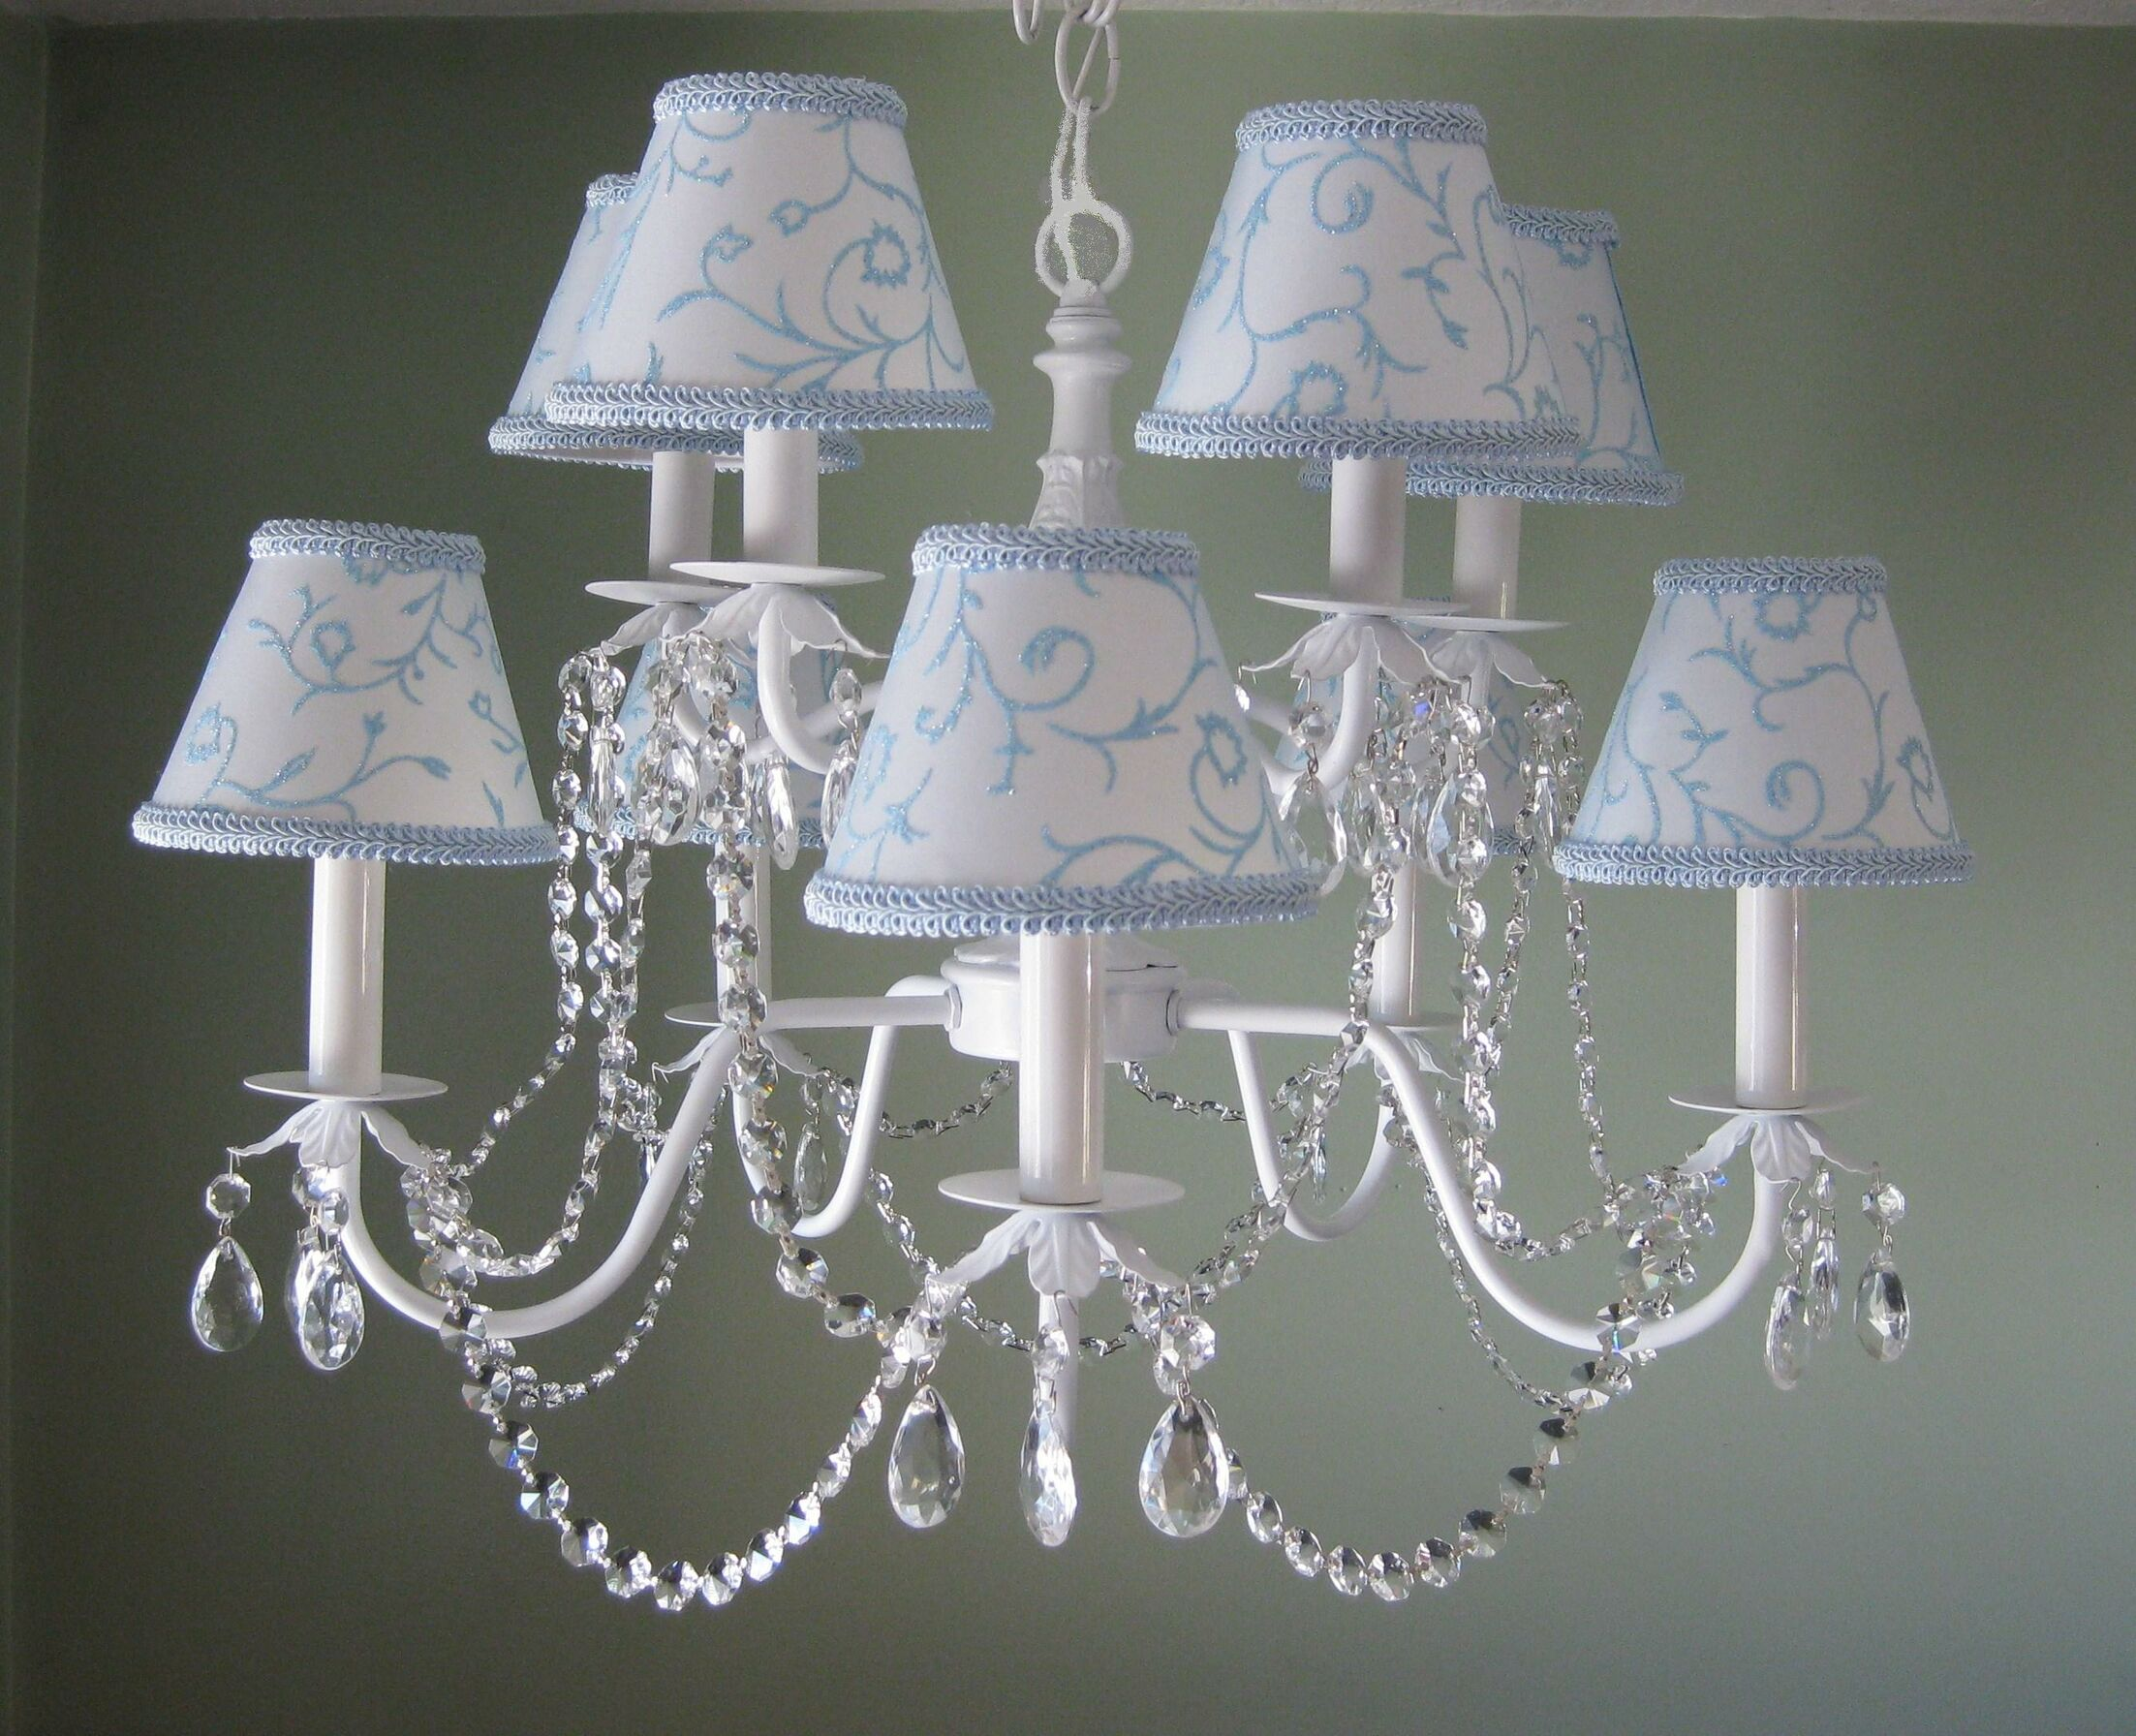 Majestic Queen 10-Light Shaded Chandelier Shade: Rapunzels Tower White